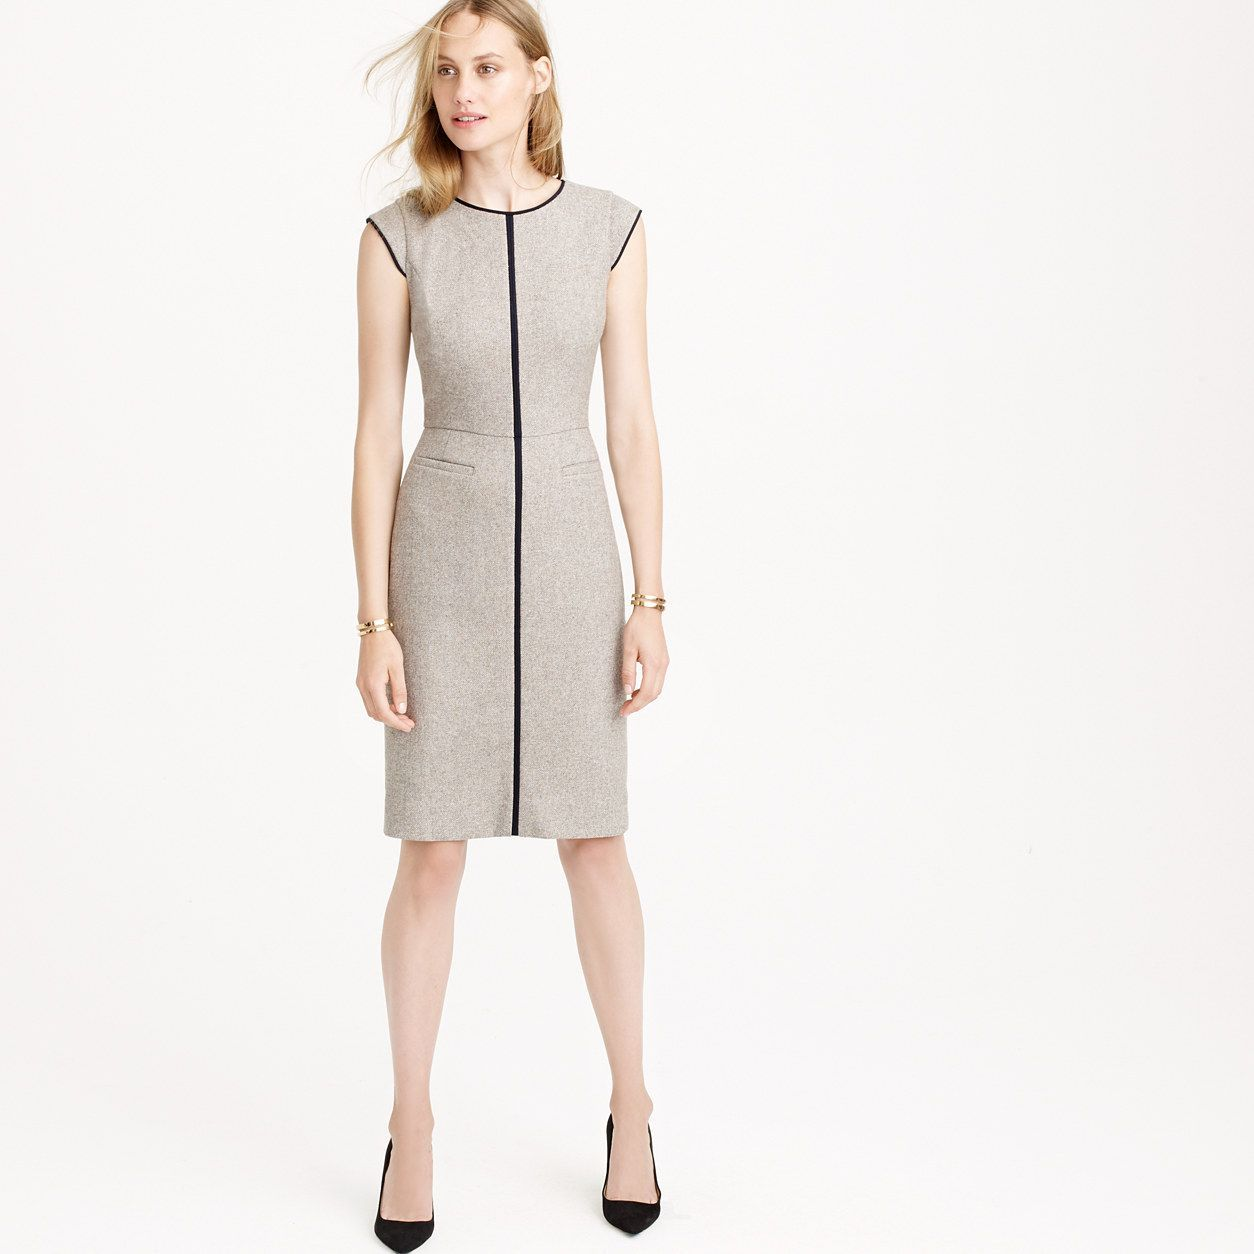 J Crew Womens Tall Cap Sleeve Dress In Piped Donegal Wool Products